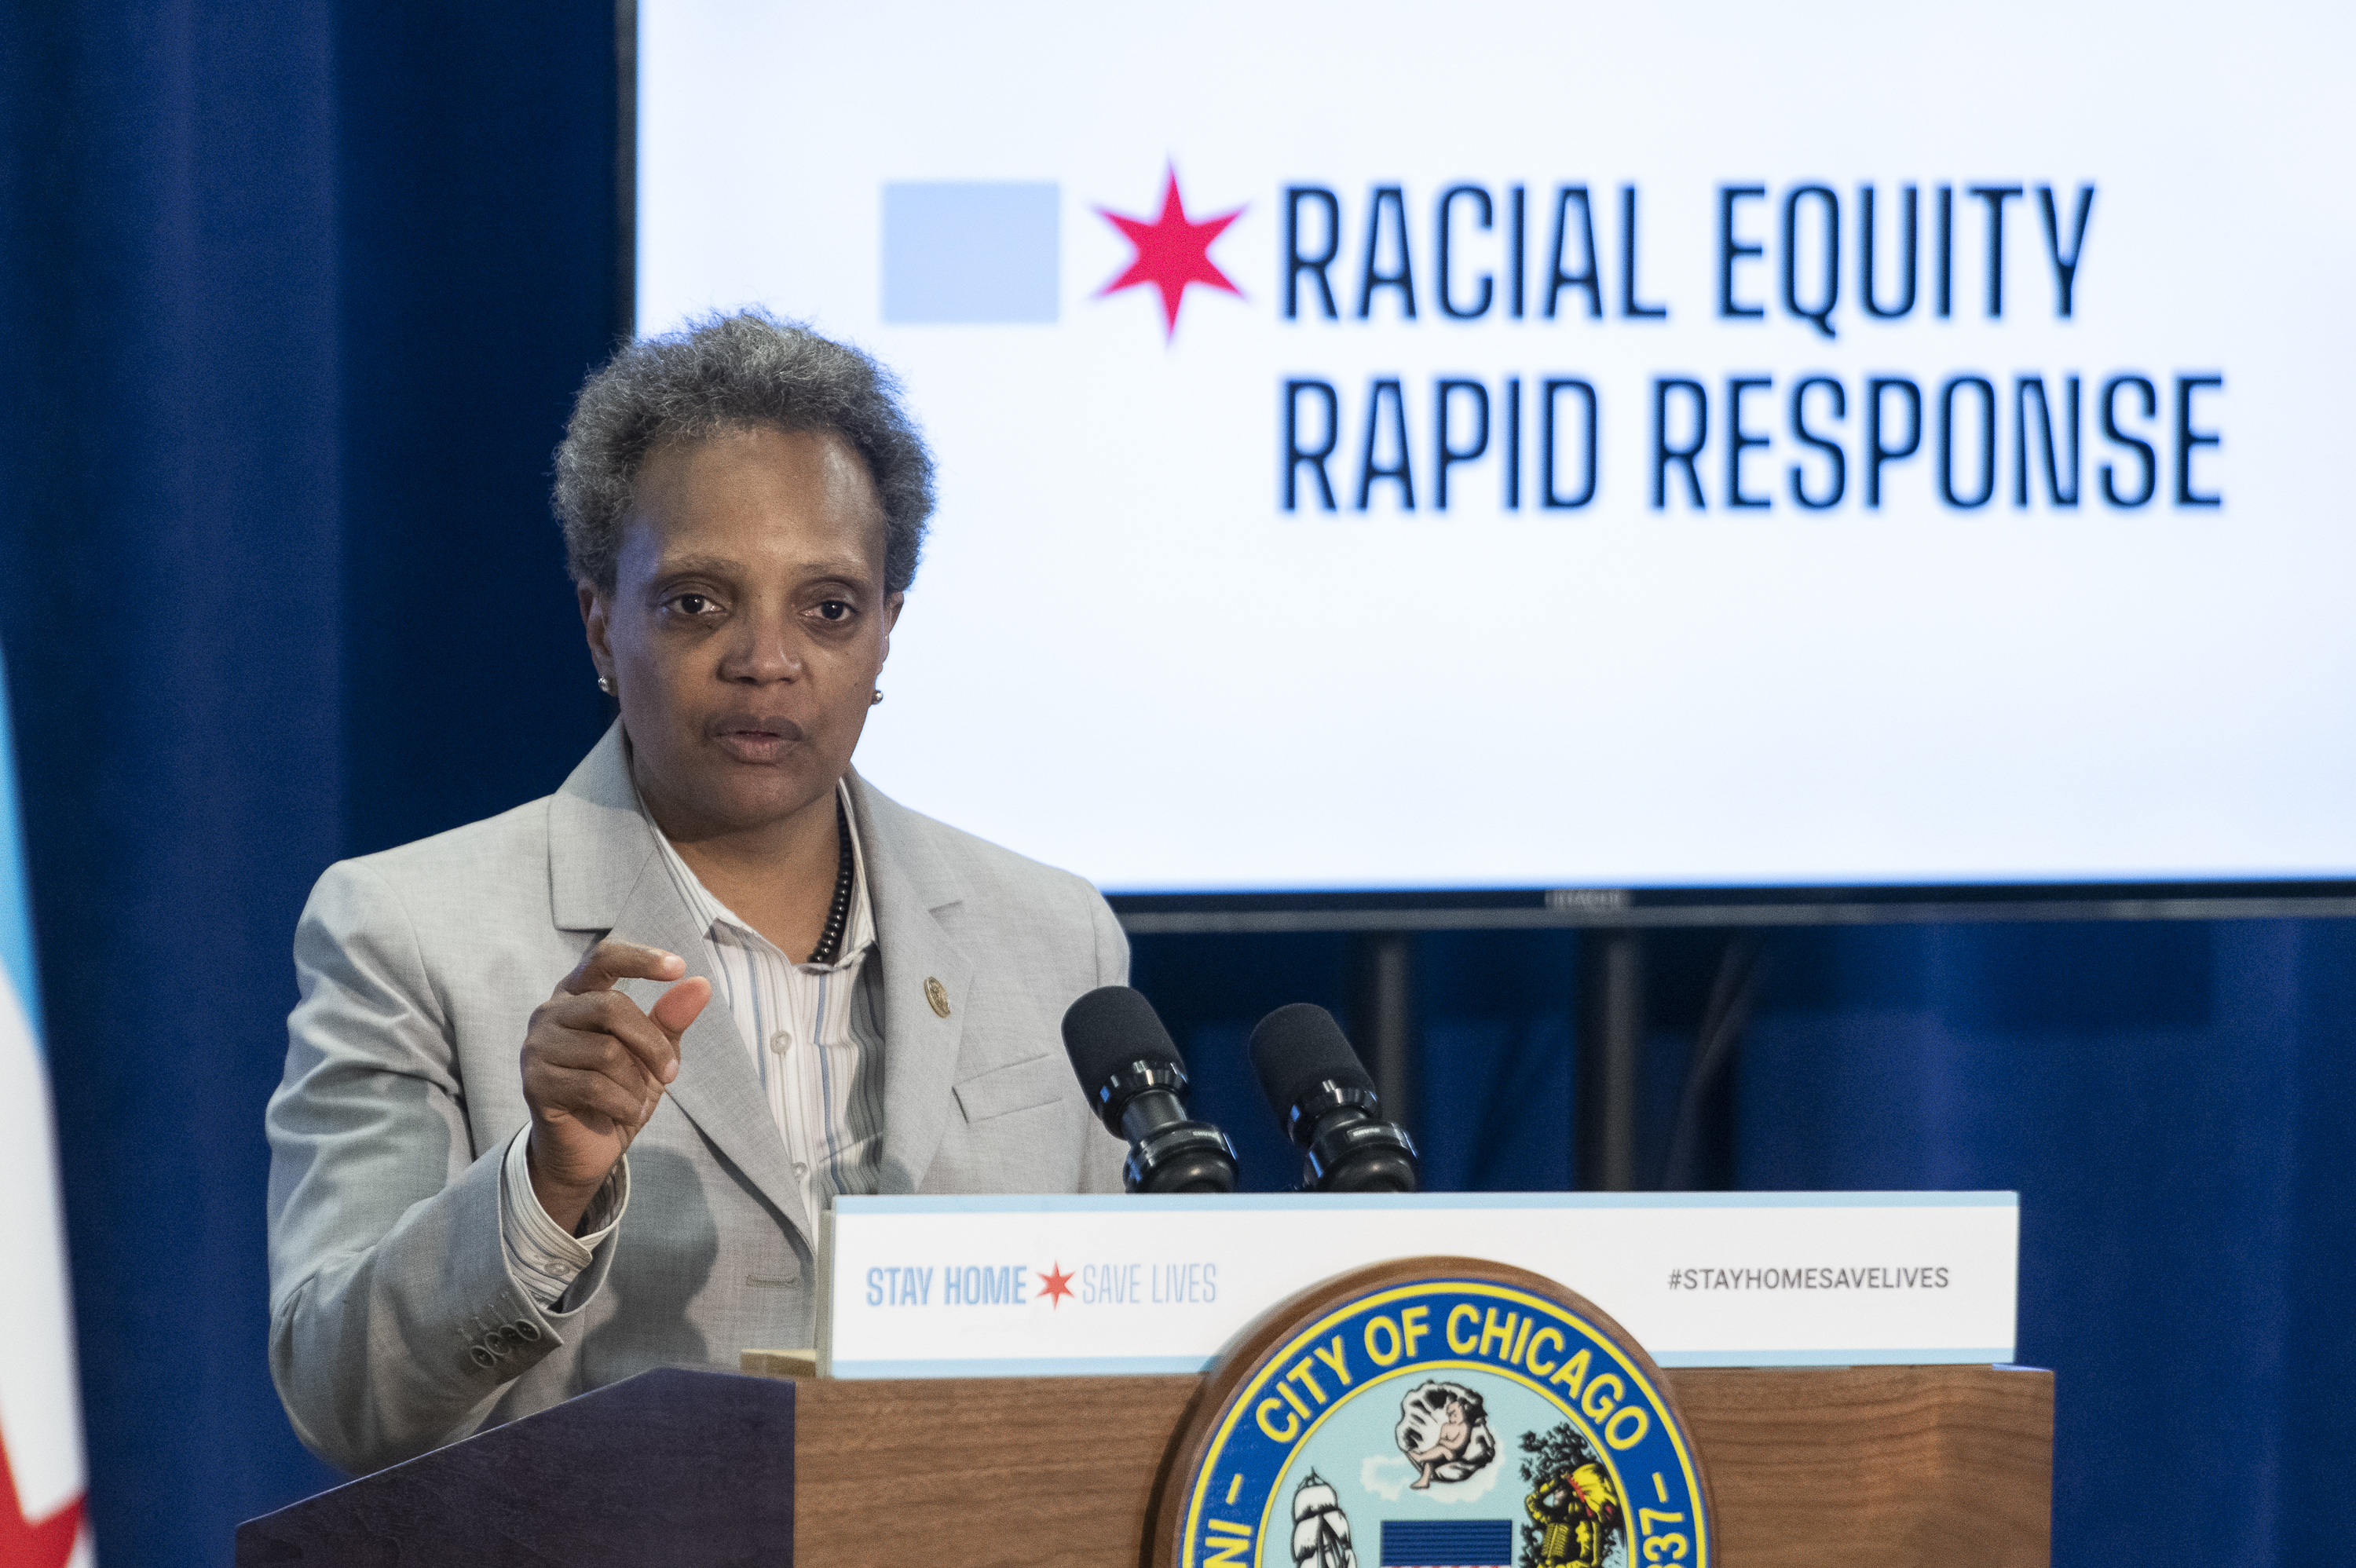 Mayor Lori Lightfoot answers reporters questions during a press conference to provide an update to the latest efforts by the racial equity rapid response teams, Monday April 20, 2020.